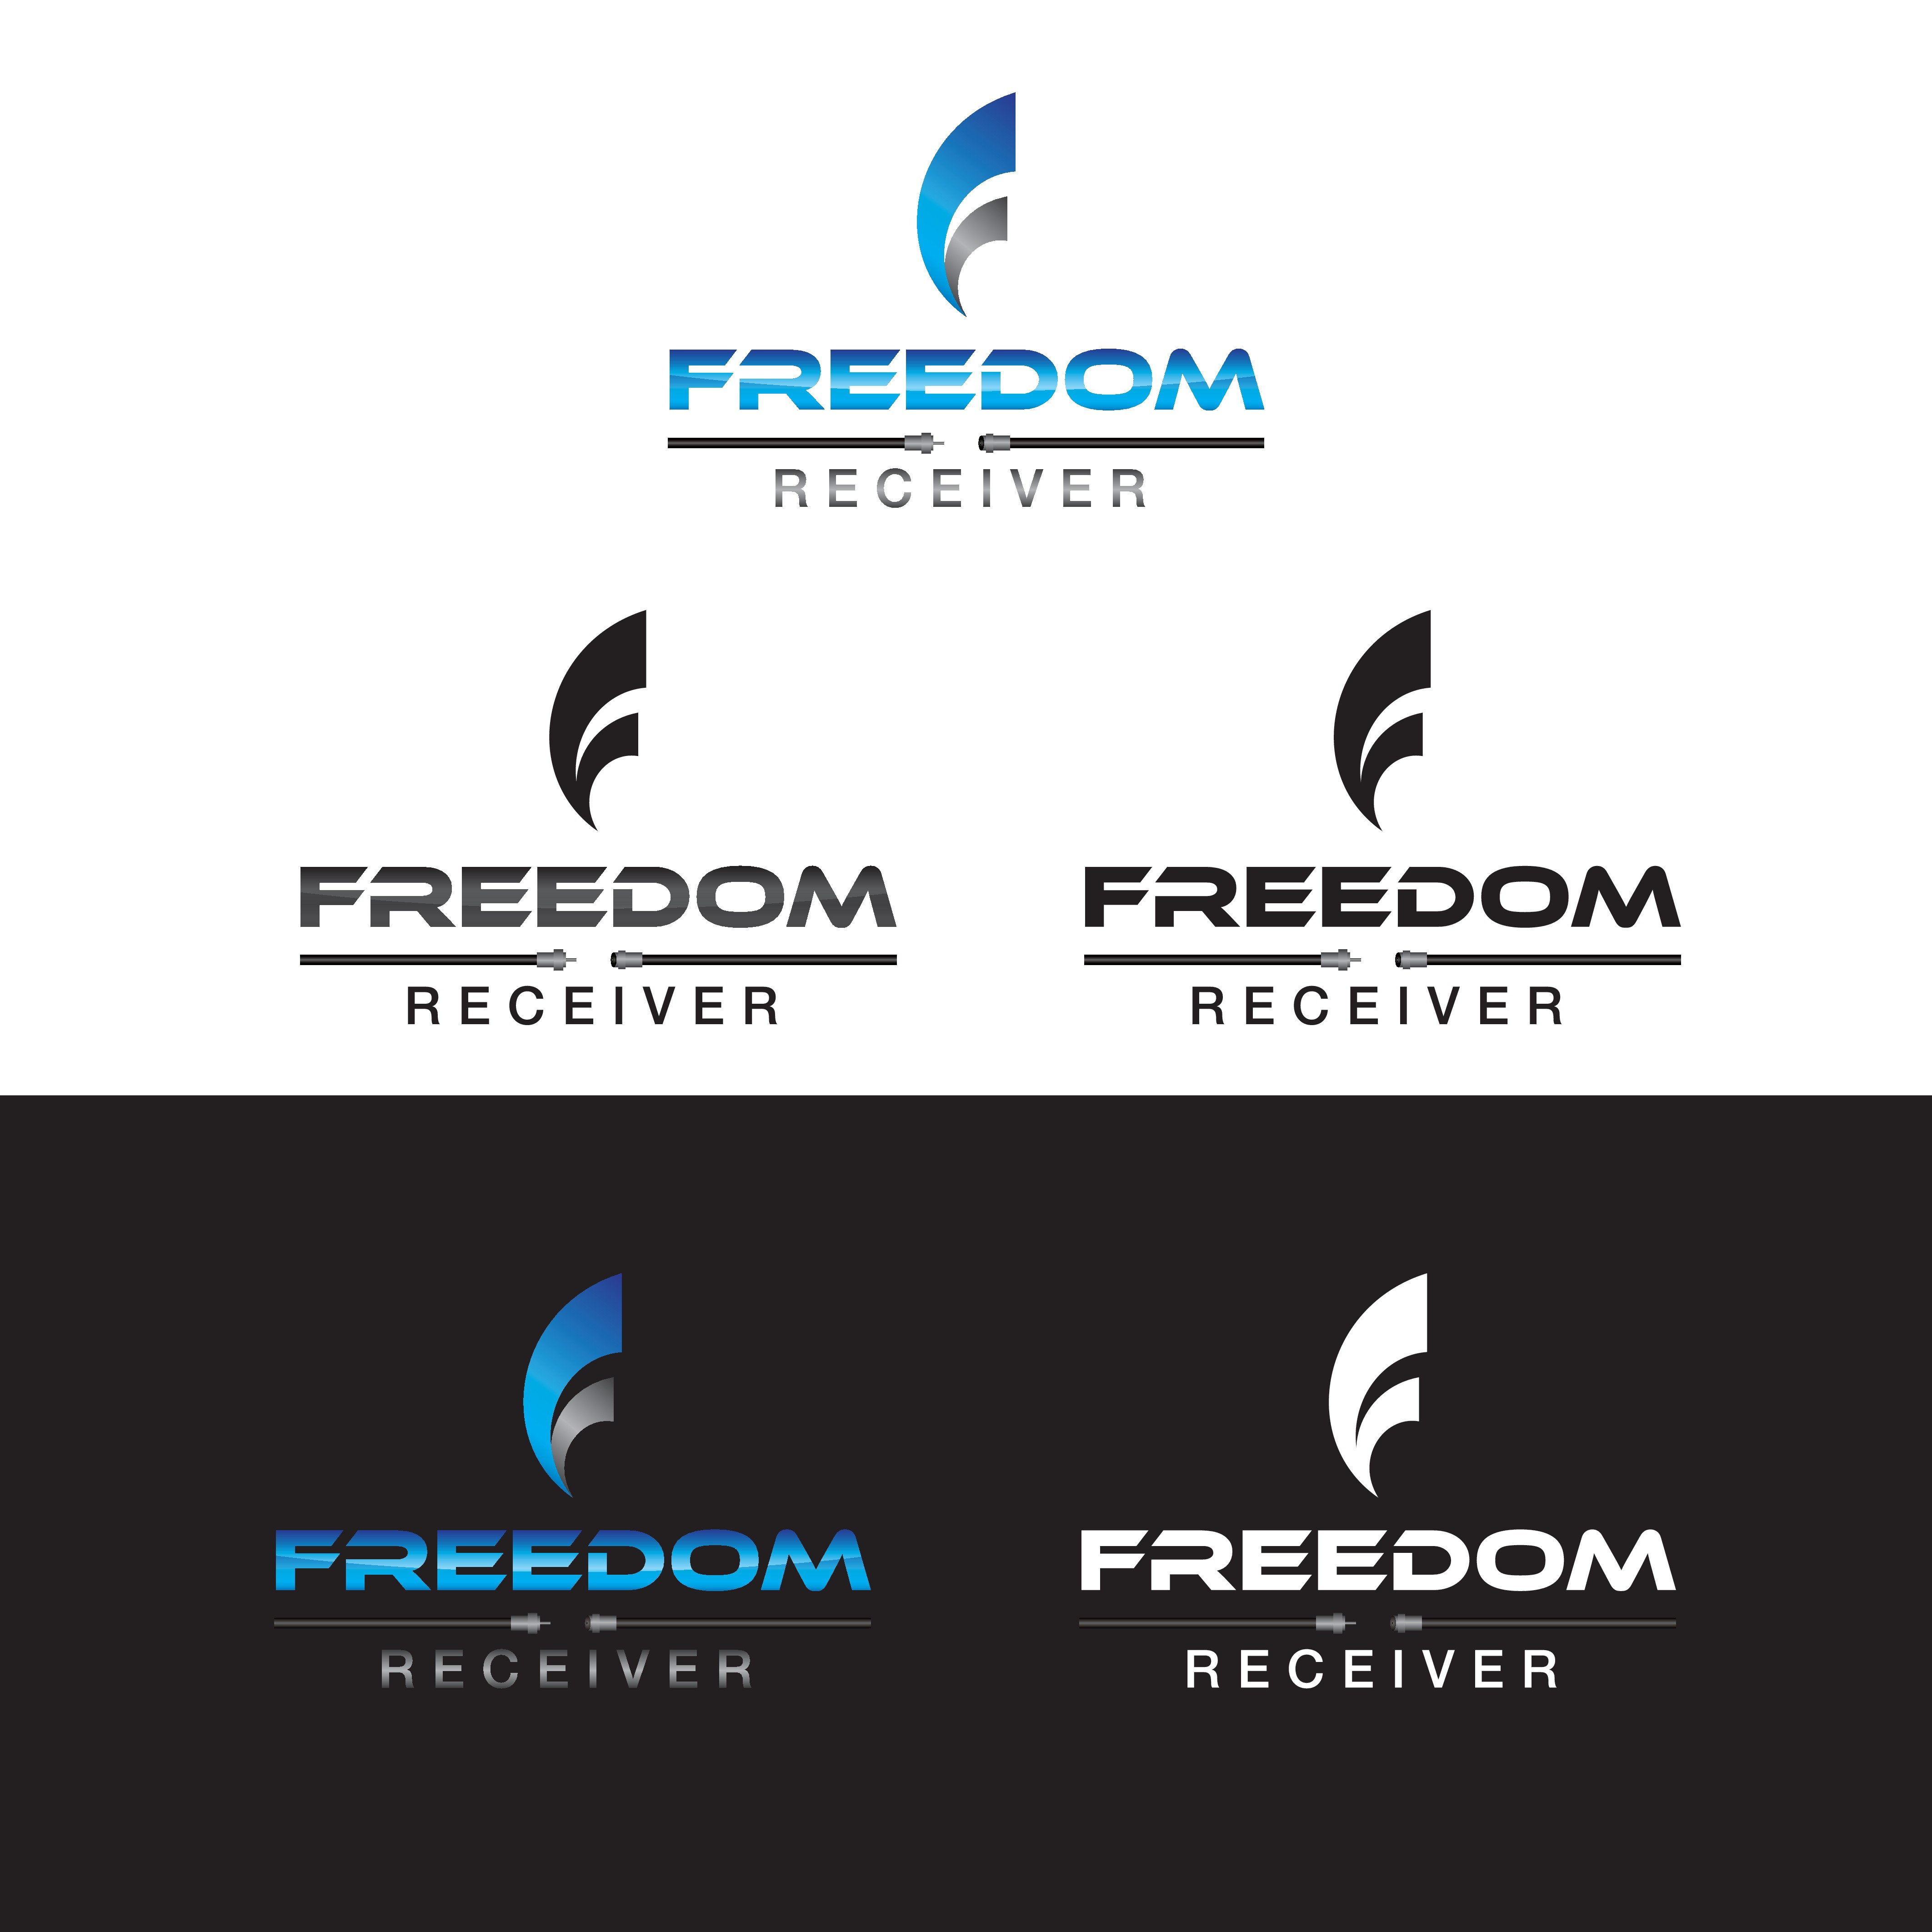 Create a logo for a box that will eliminate cable bills (FREEDOM RECEIVER)